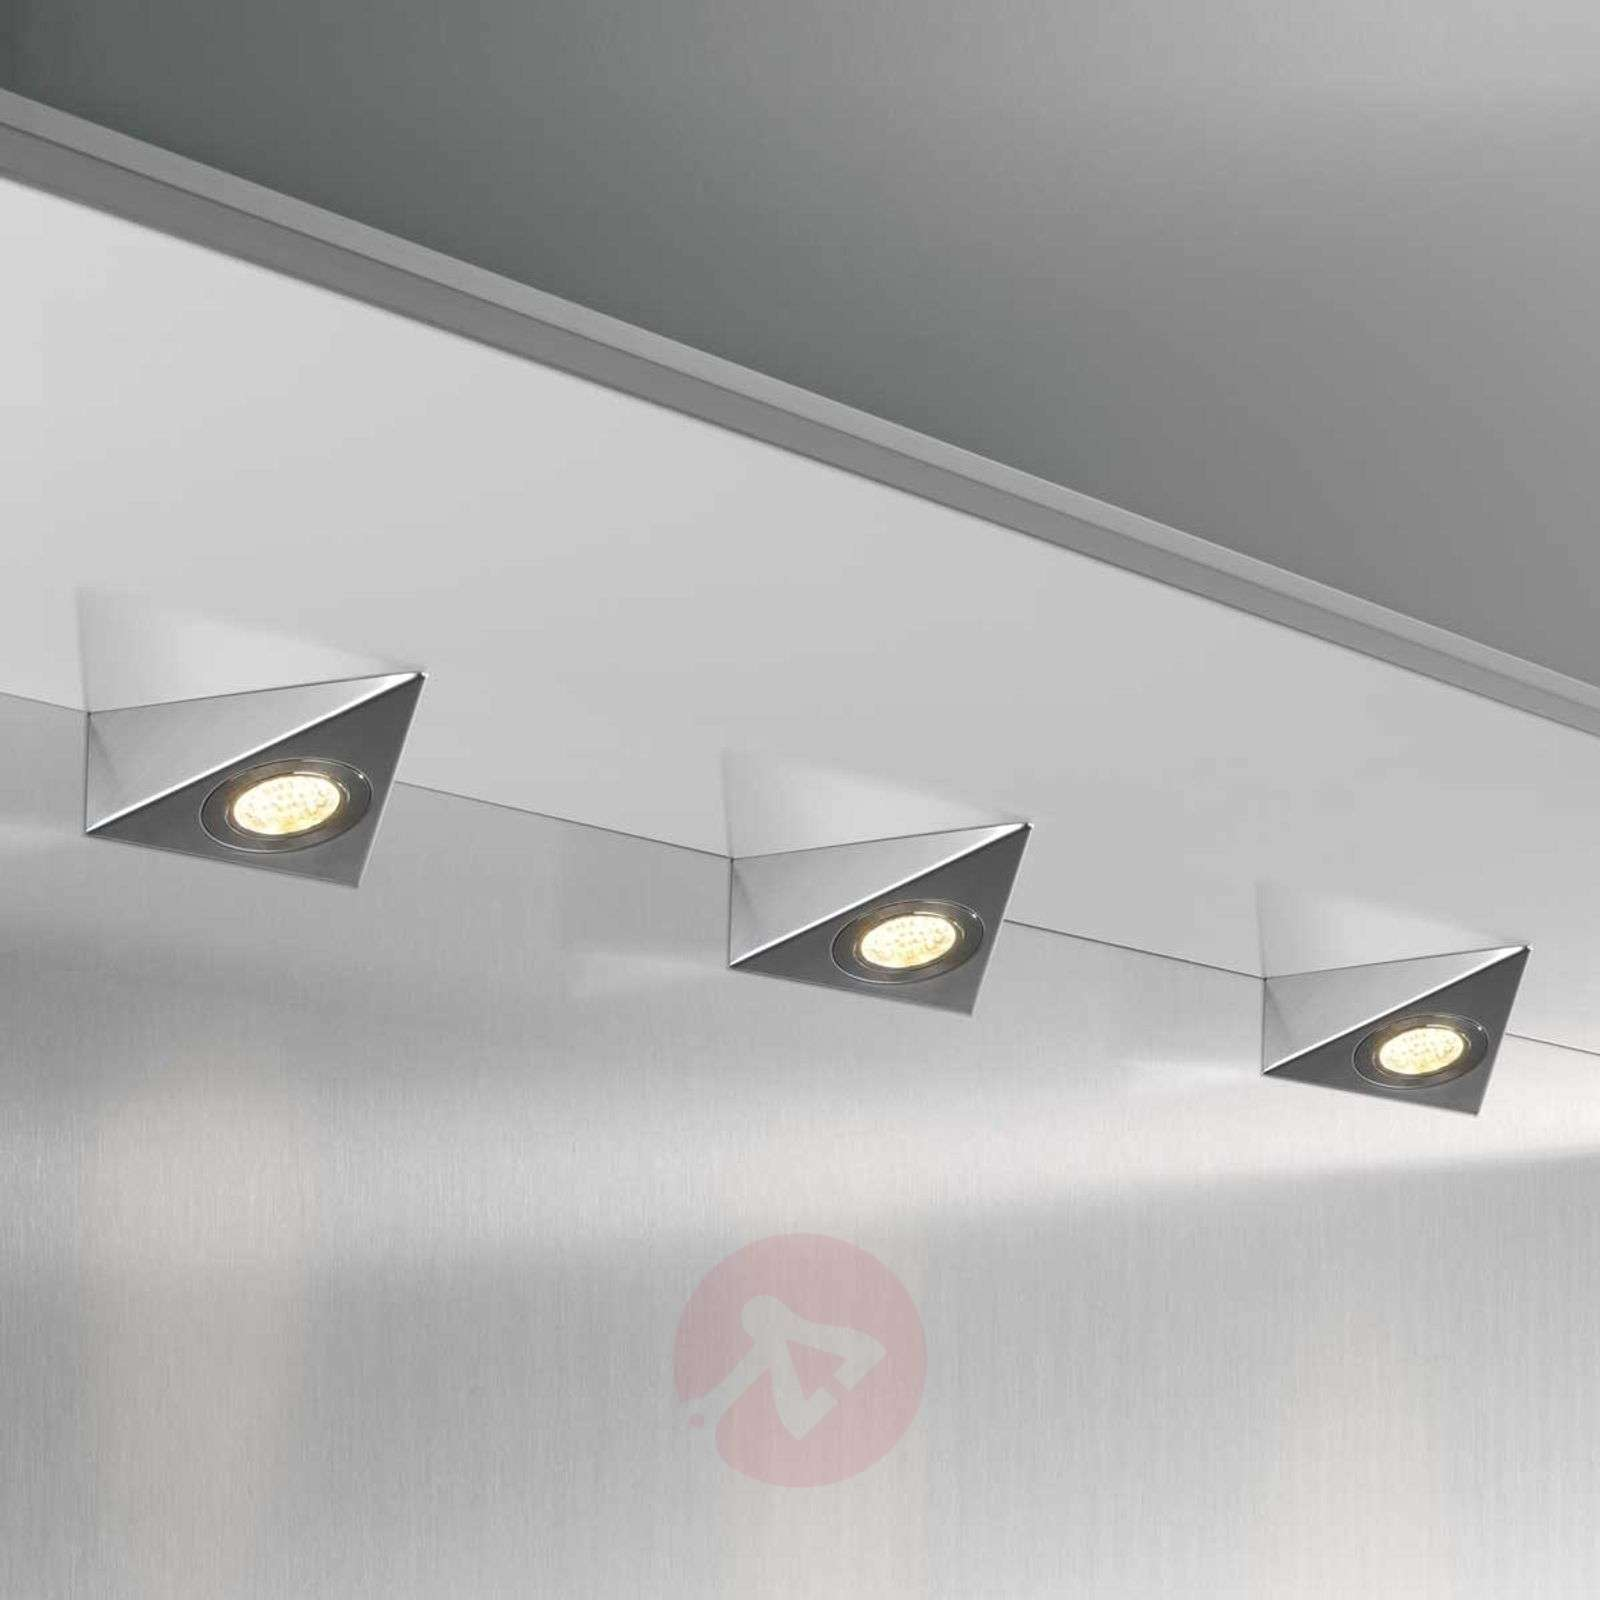 DHL CF Set 3 lámparas LED bajo mueble triangular-3025275-01